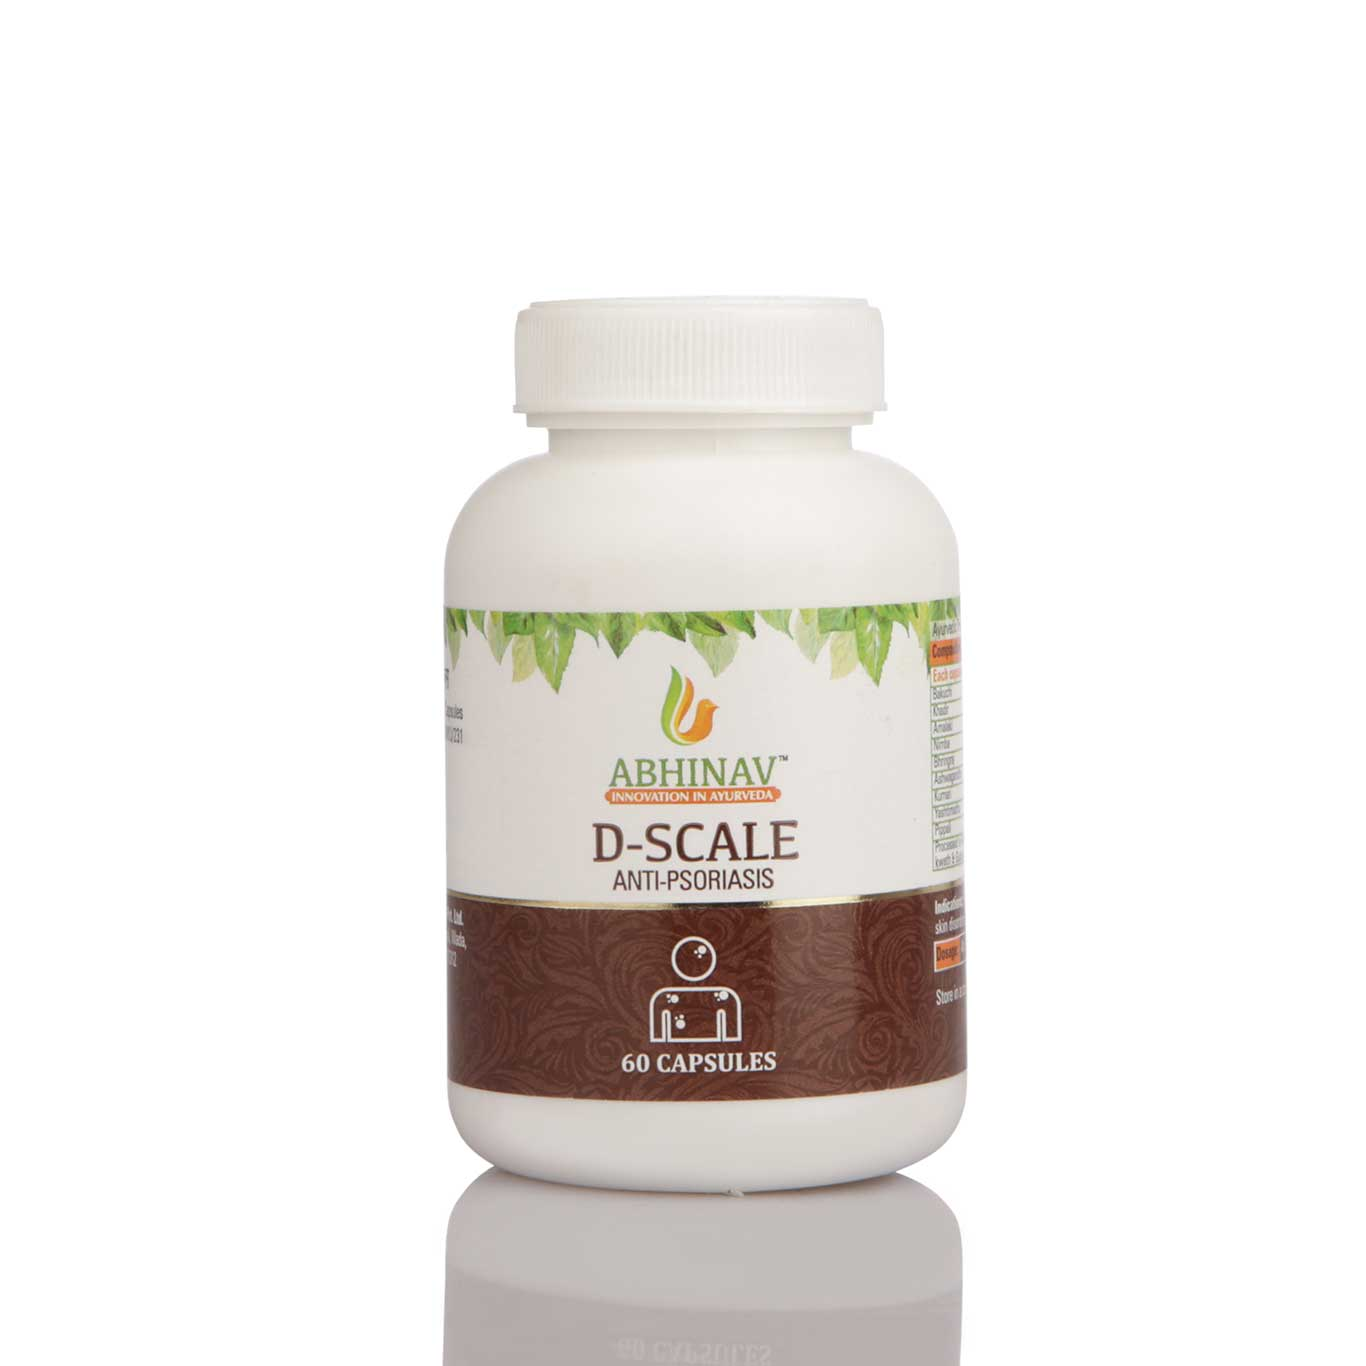 D-SCALE ayurvedic capsule in india